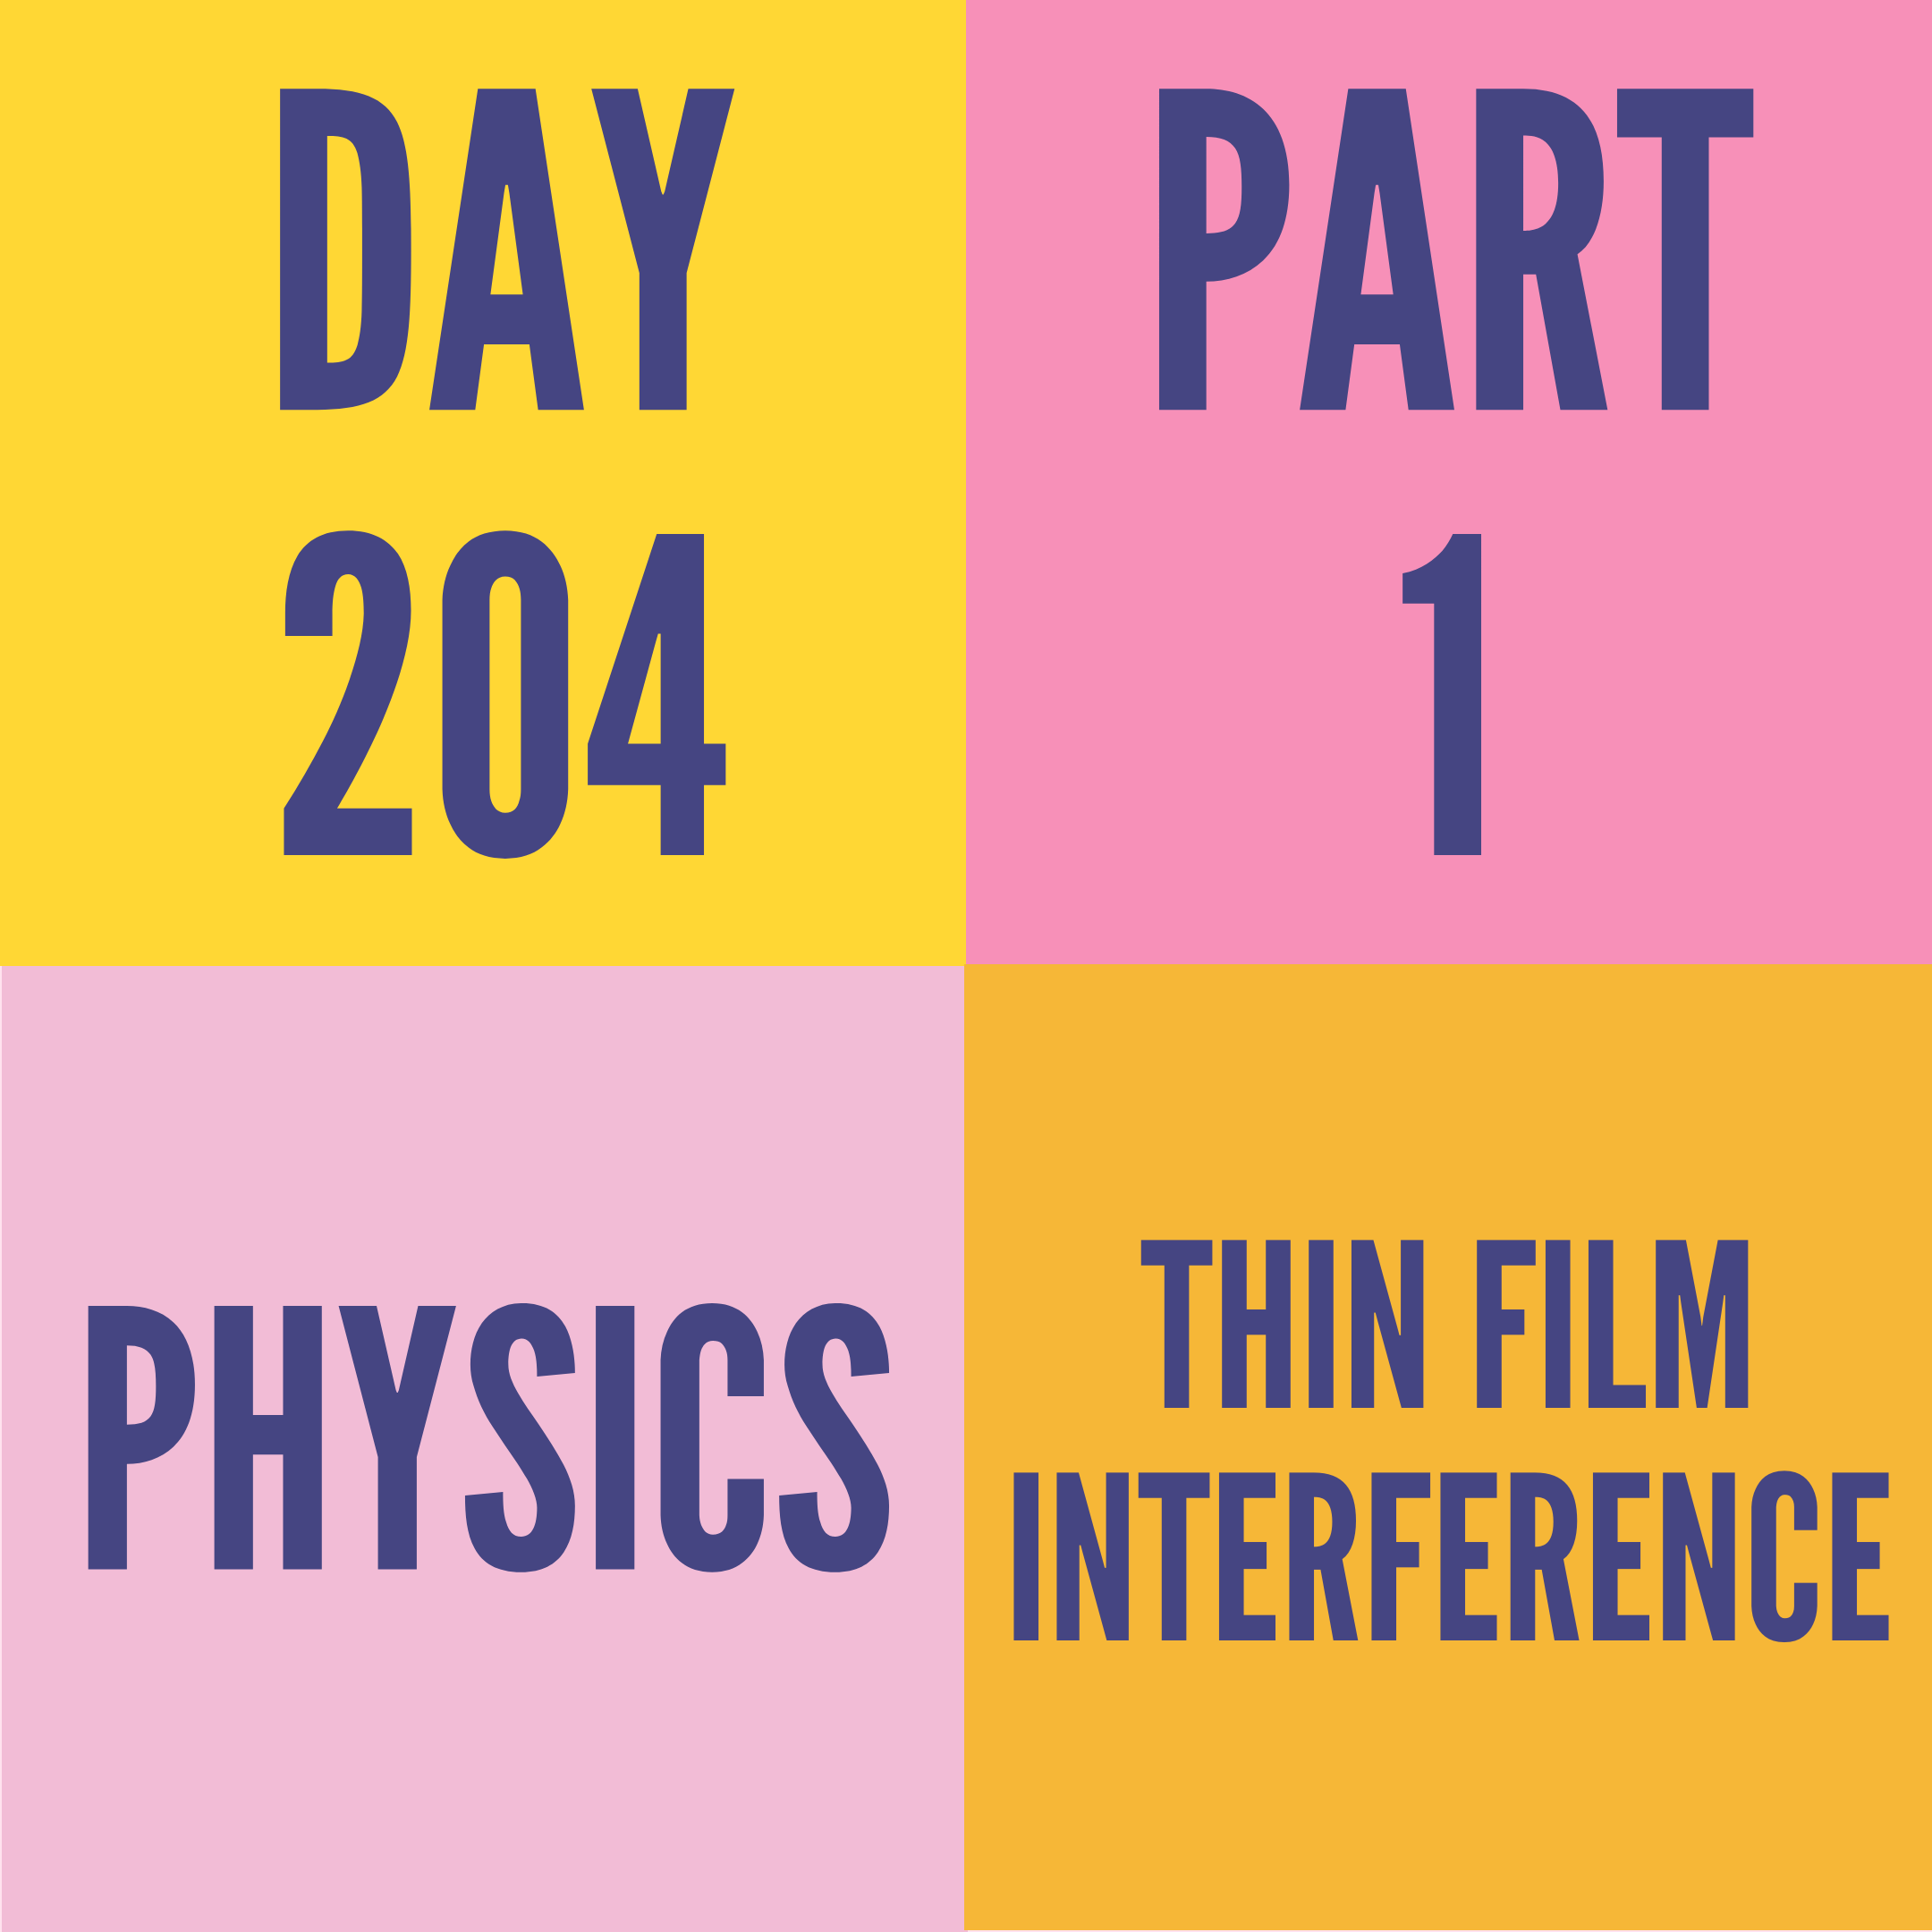 DAY-204 PART-1 THIN FILM INTERFERENCE